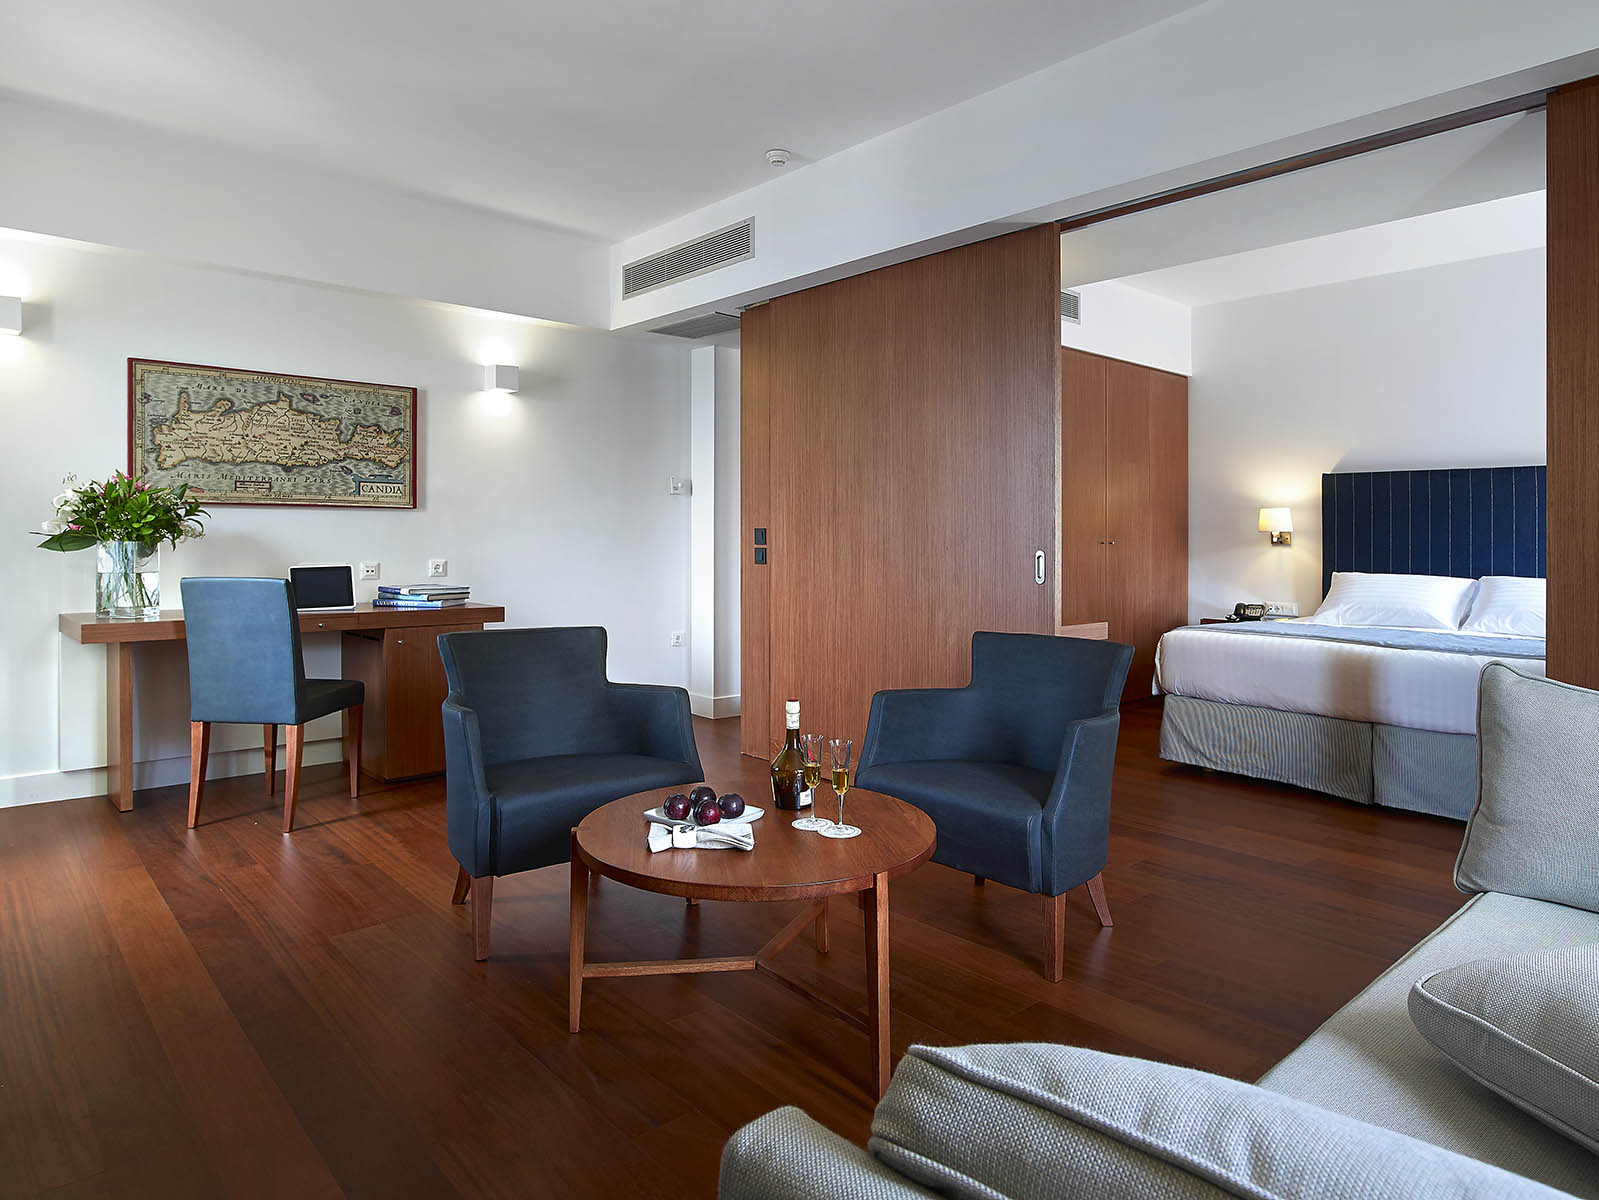 luxury accommodation in crete - Porto Veneziano Hotel